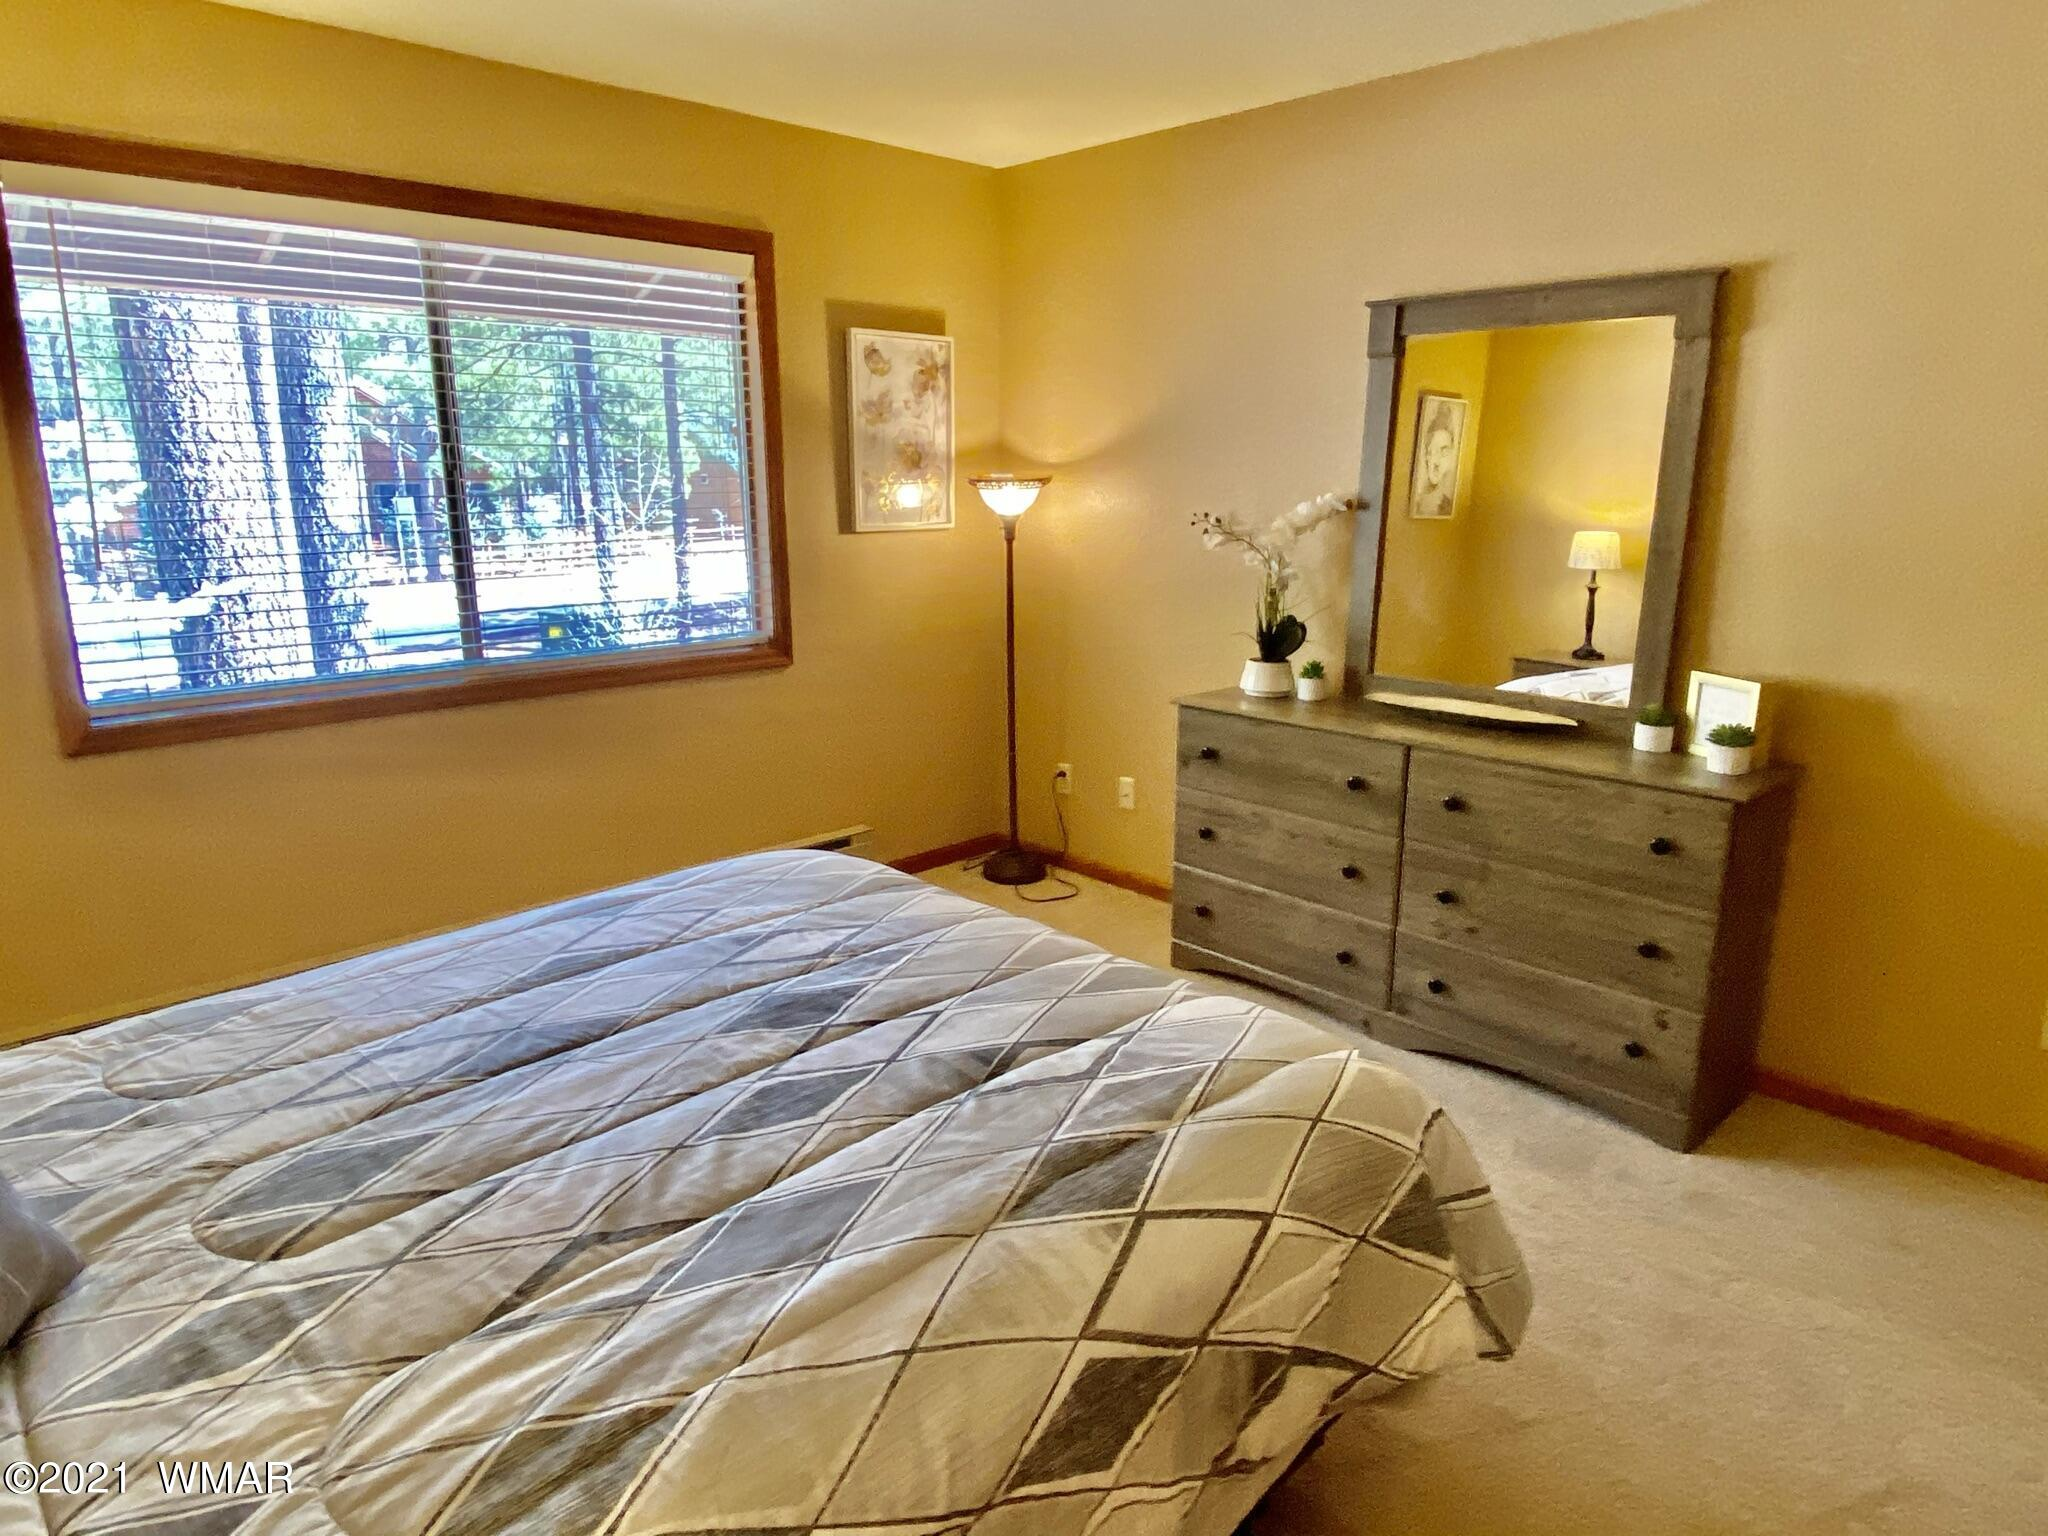 This home is show room ready! Most everything in this condominium is NEW. ''Pride of ownership''. Excellent property for a vacation rental, completely turn key. Walk to dining and golfing and just a short drive to fishing and skiing.